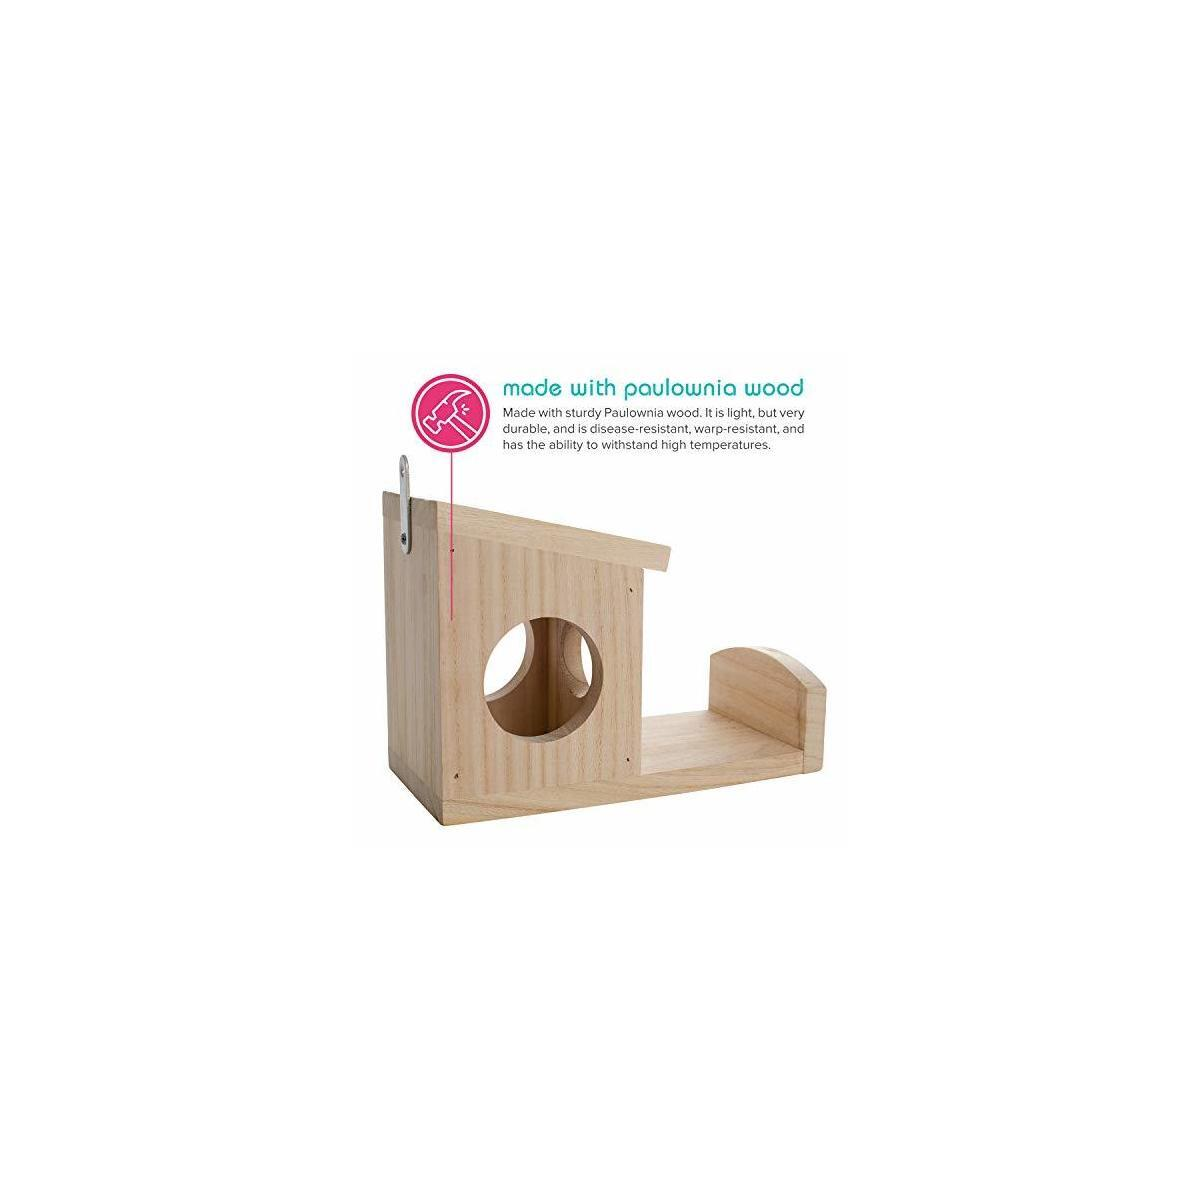 Nature's Hangout Squirrel Feeder for Feeding Your Furry Friends Outdoors - Environmentally Friendly Wood Feeder Holds Food, Nuts and Seeds - Hangs Outside Near The House so You Can Watch The Fun